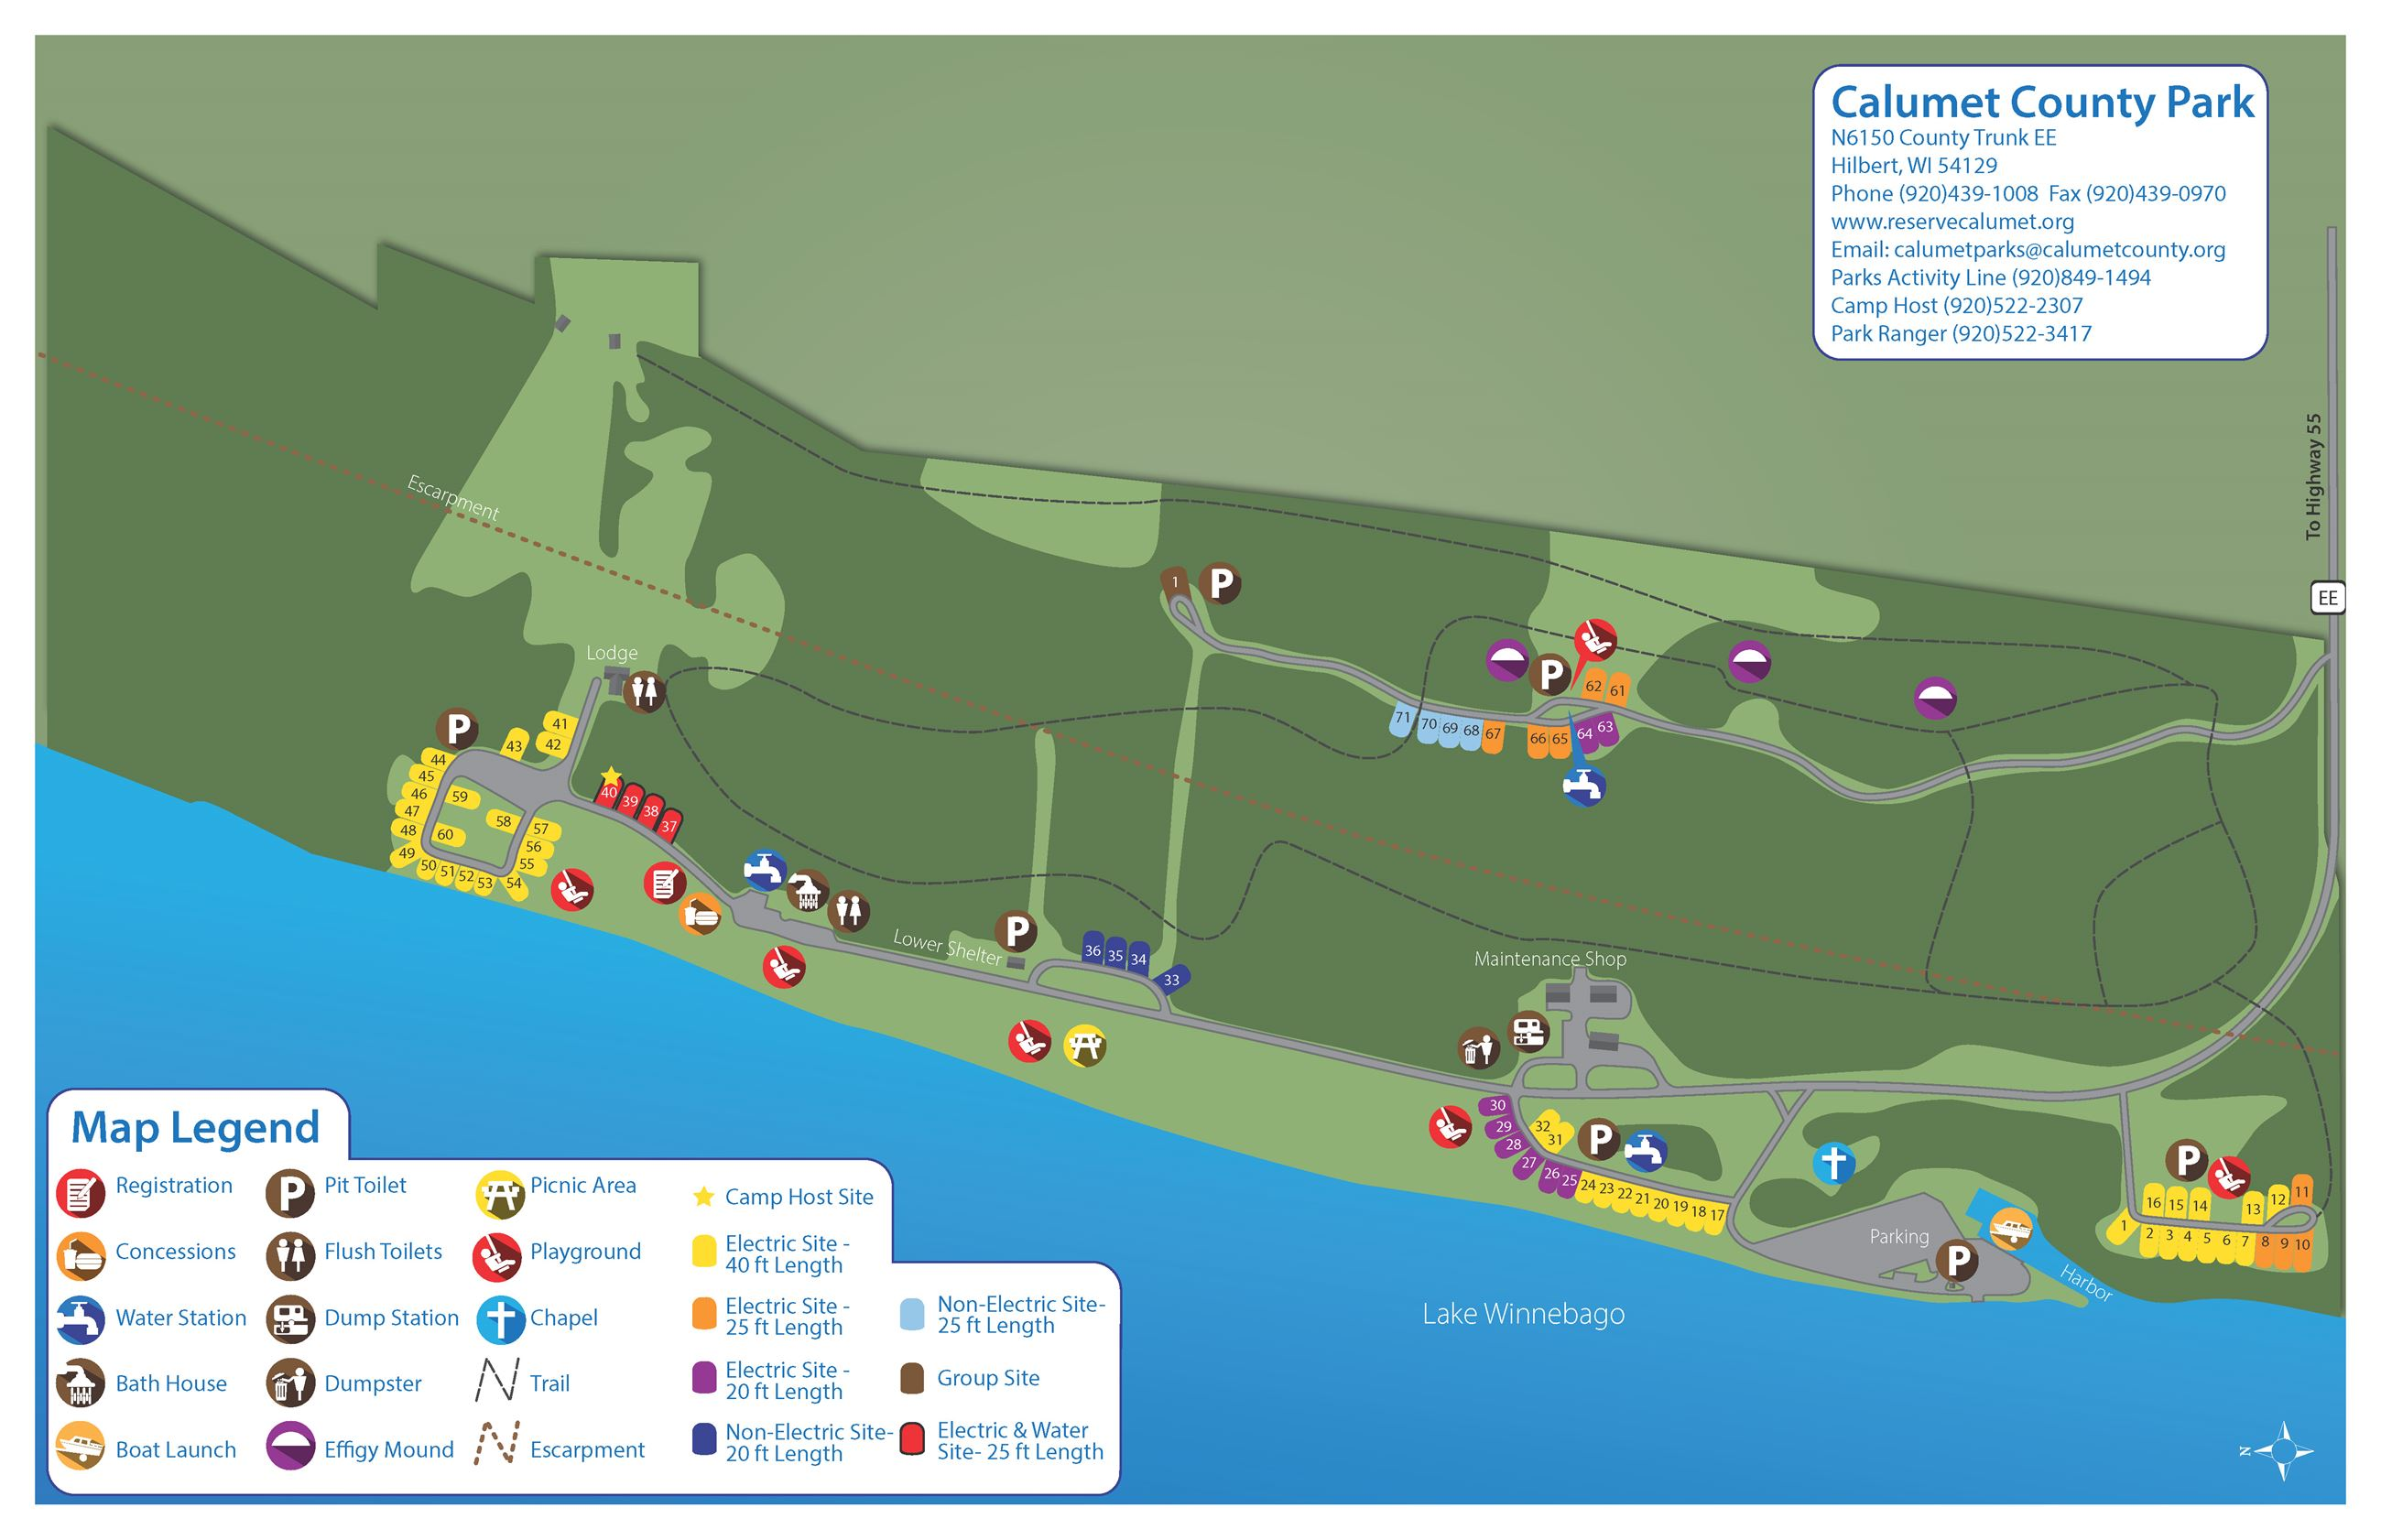 Calumet County Park Campground and Trail Map2021